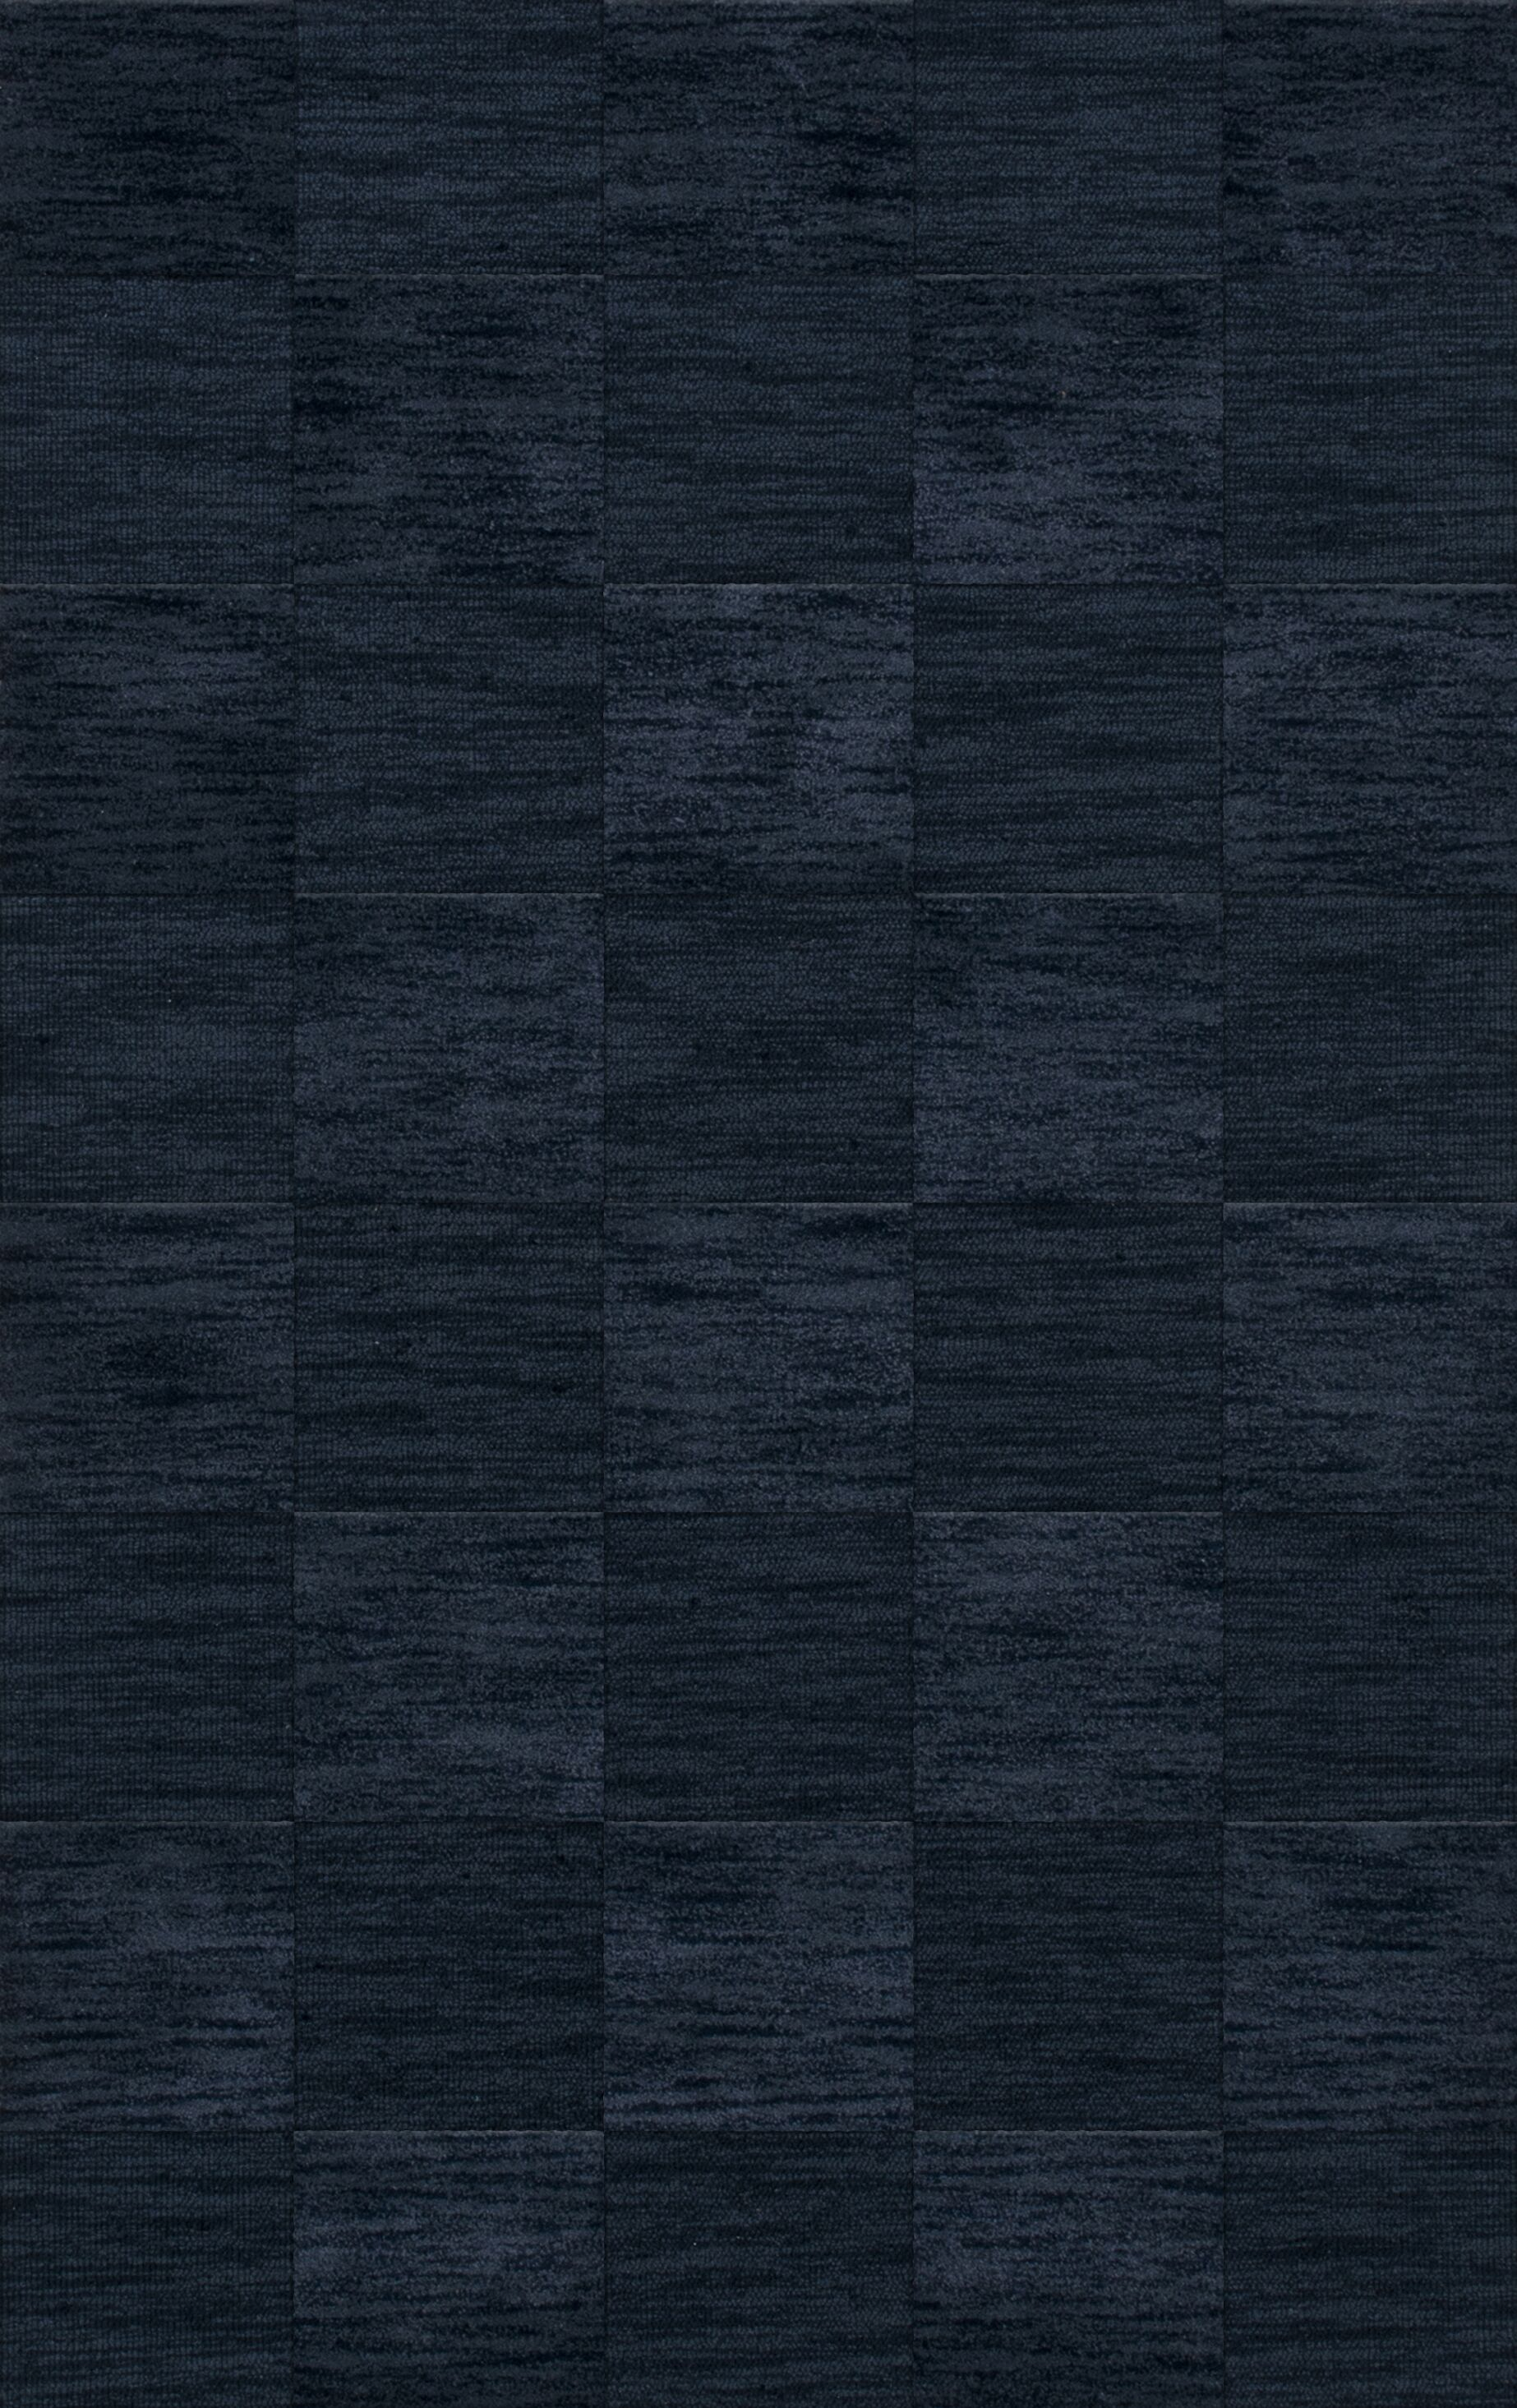 Dover Tufted Wool Navy Area Rug Rug Size: Rectangle 3' x 5'